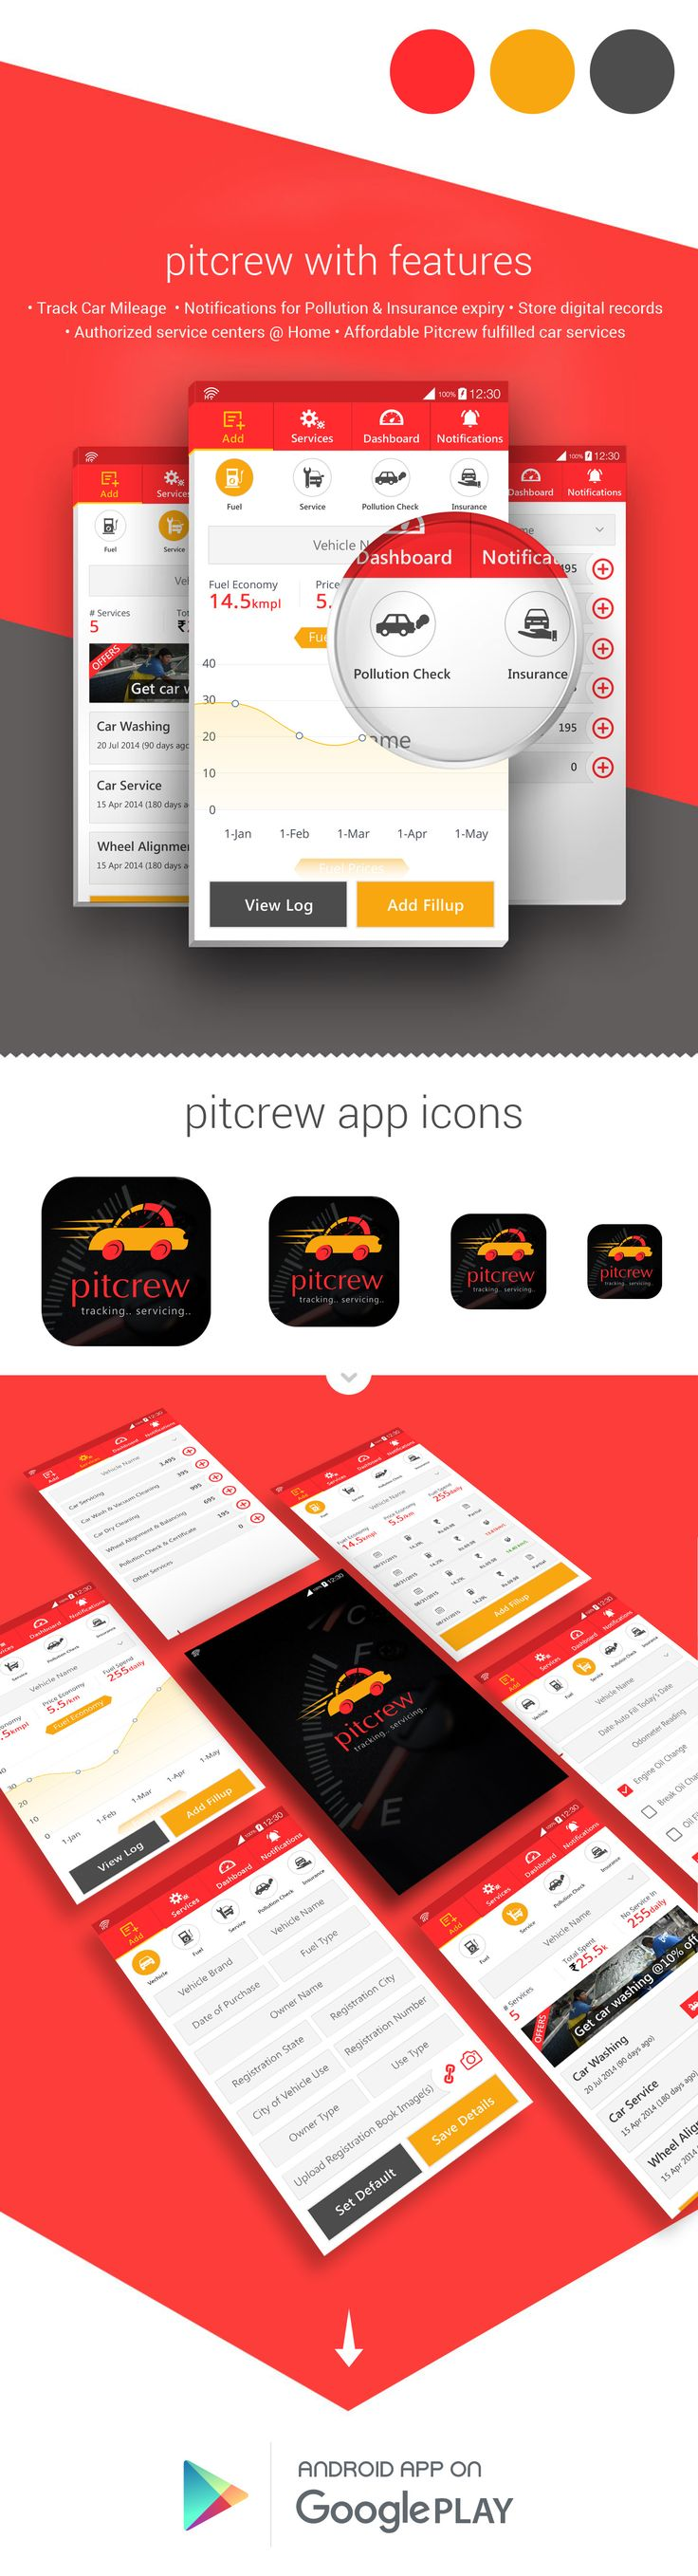 Pitcrew is a car servicing tracking app